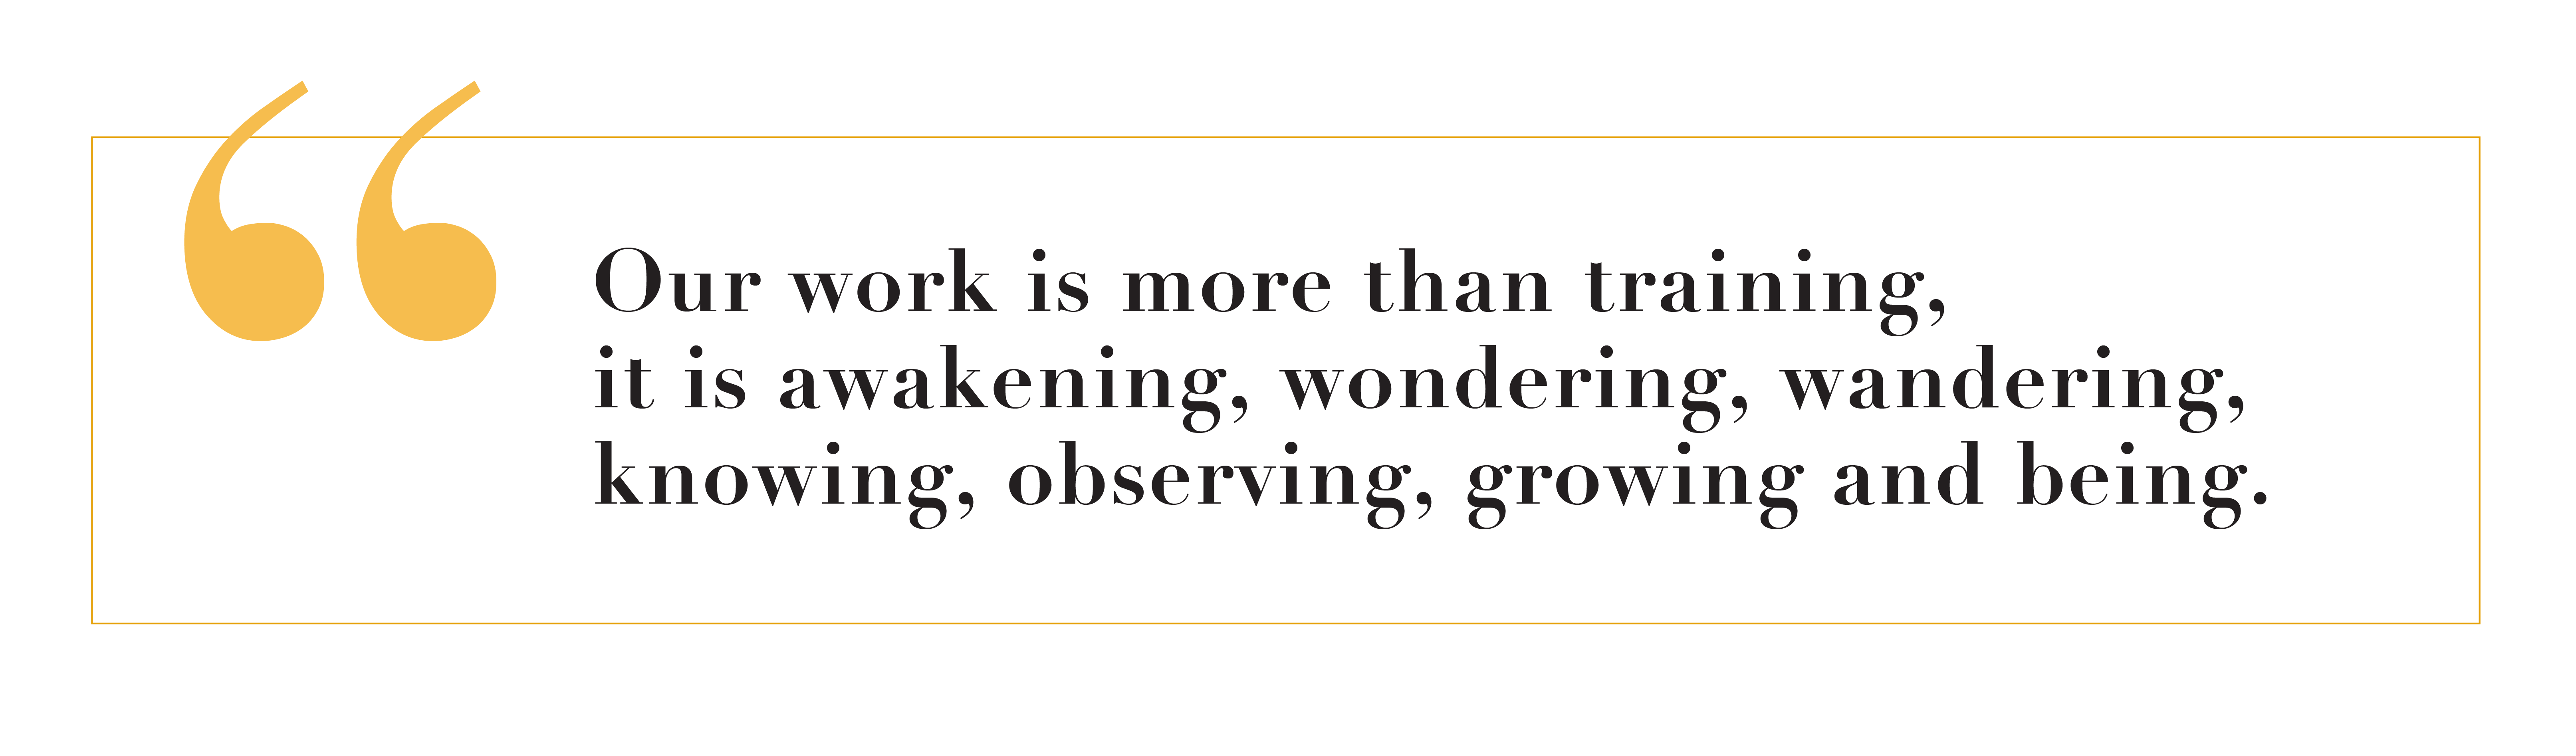 quote: 'Our work is more than training, it is awakening, wondering, wandering, knowing, observing, growing and being.'